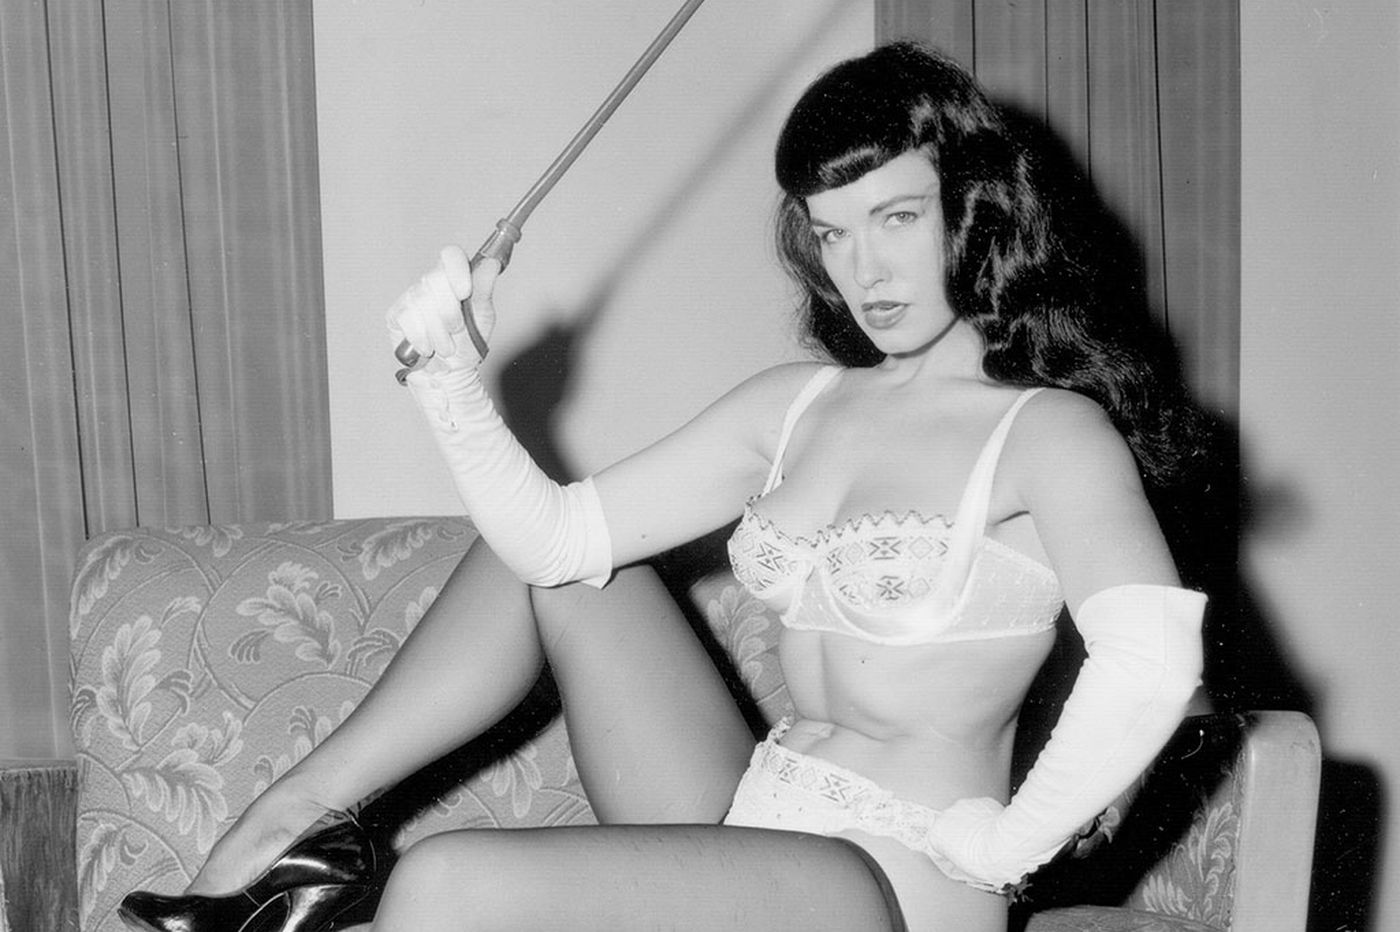 Bettie Page in her own words